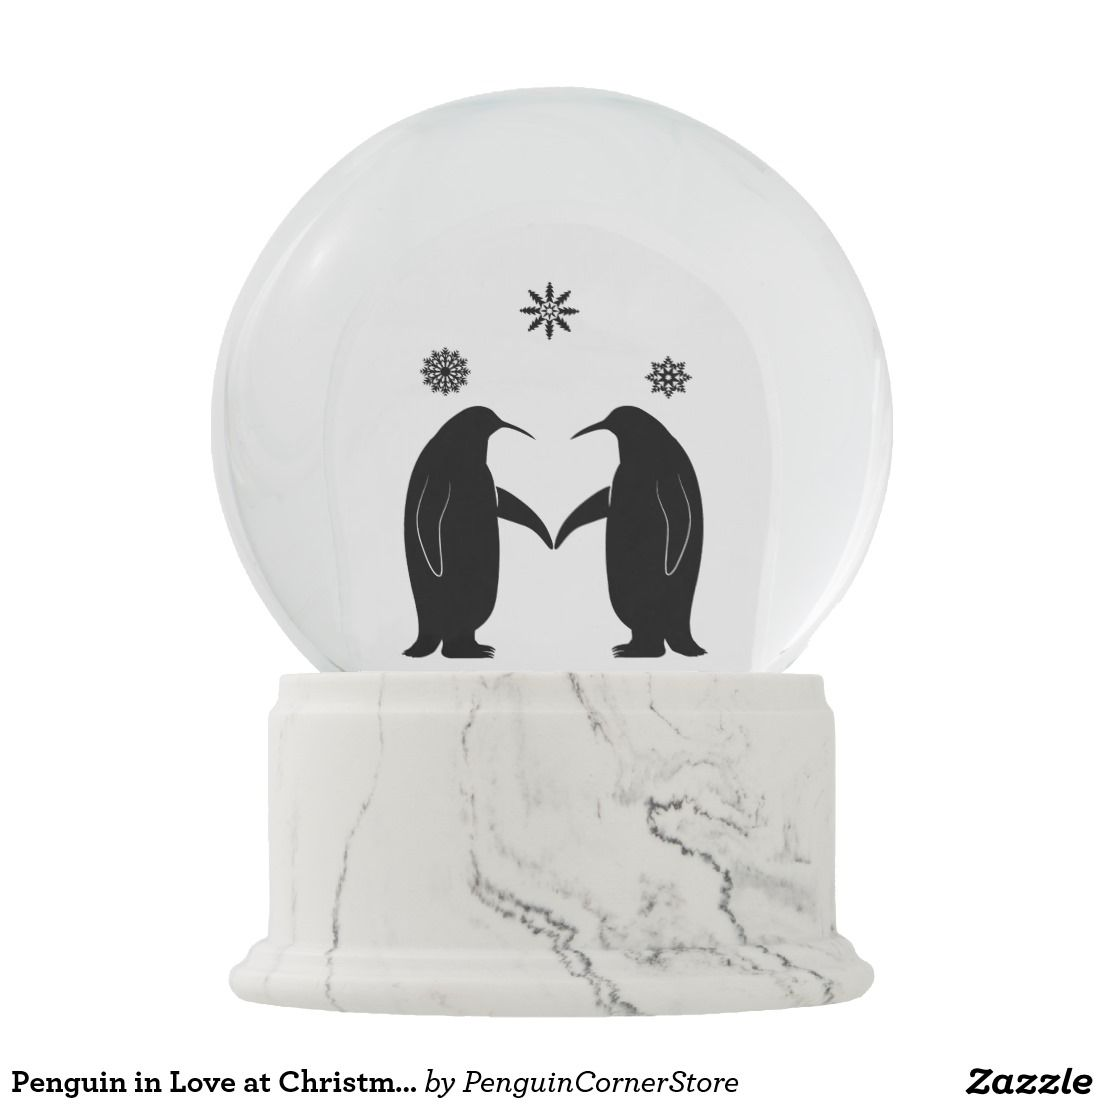 Penguin in Love at Christmas in the Snow Snow Globe